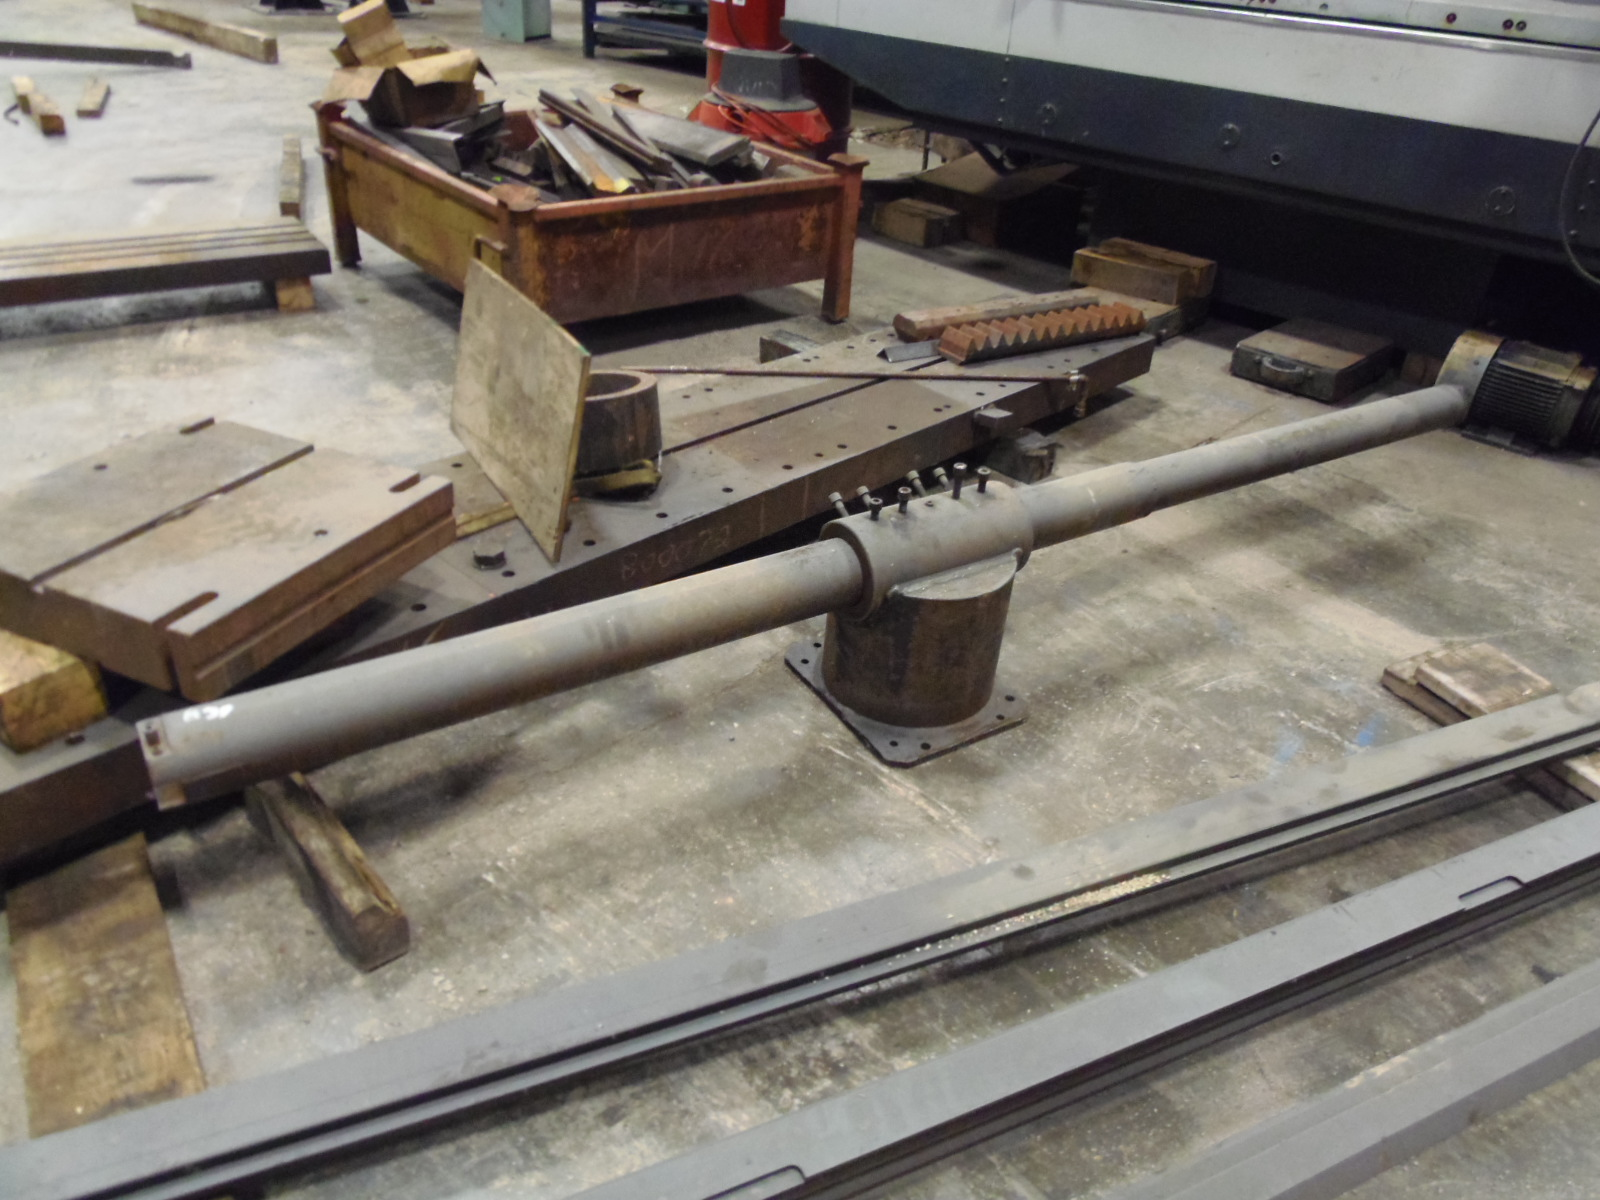 LINE BORING TOOL AND STEADY RESTS